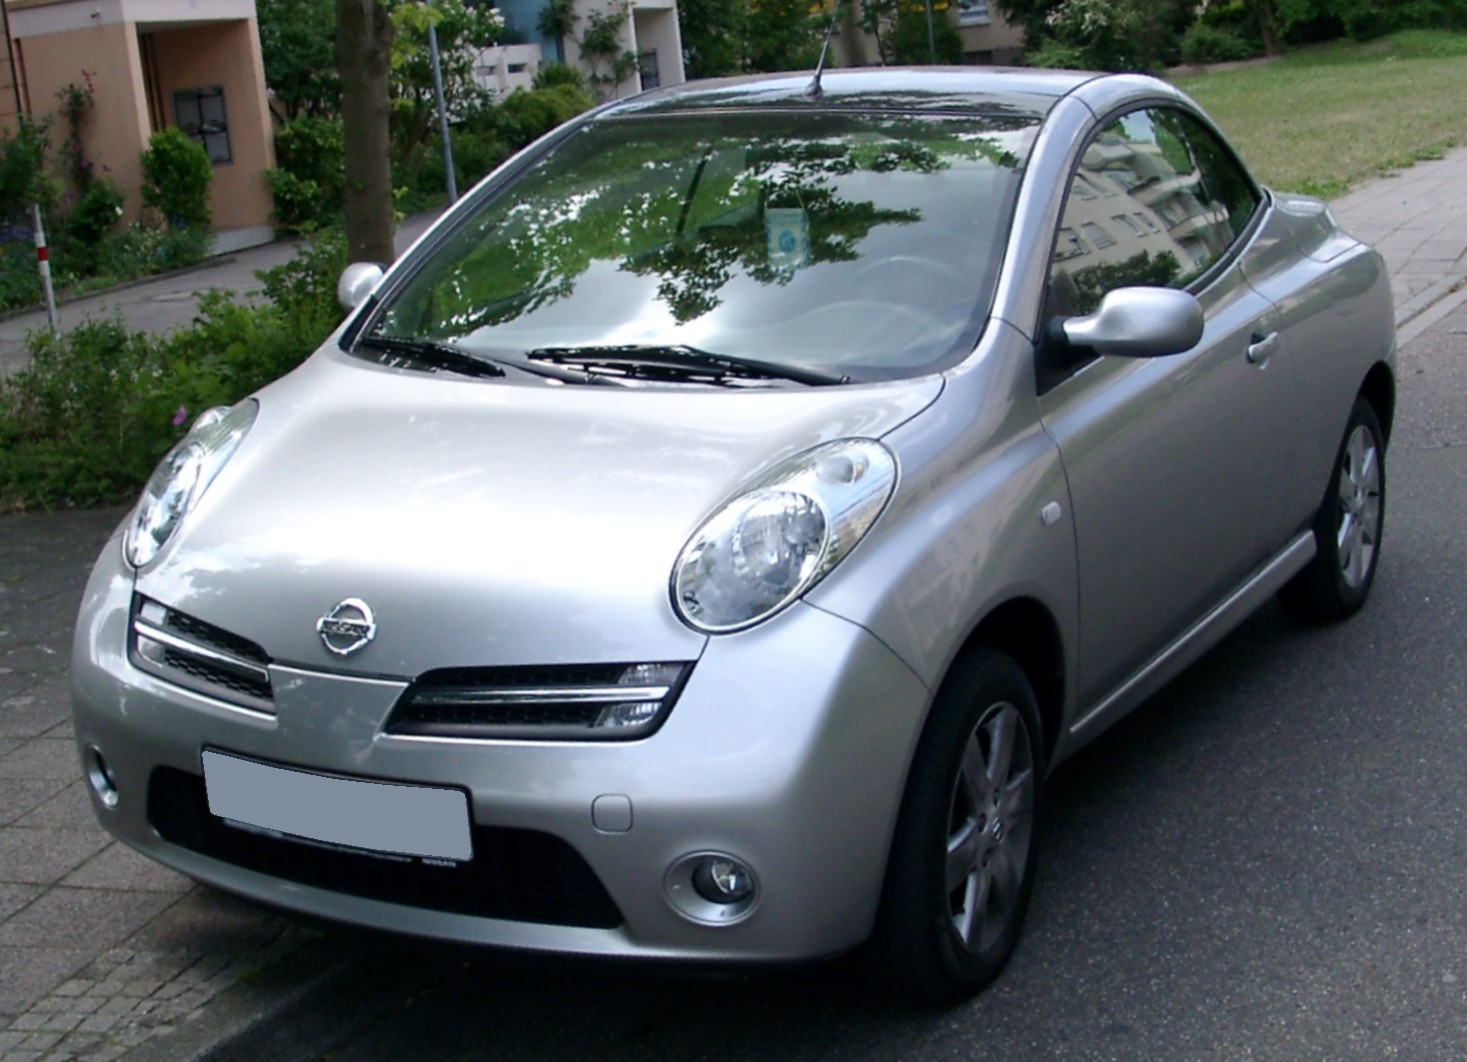 nissan micra coupe cabriolet (k12c) 2011 #7